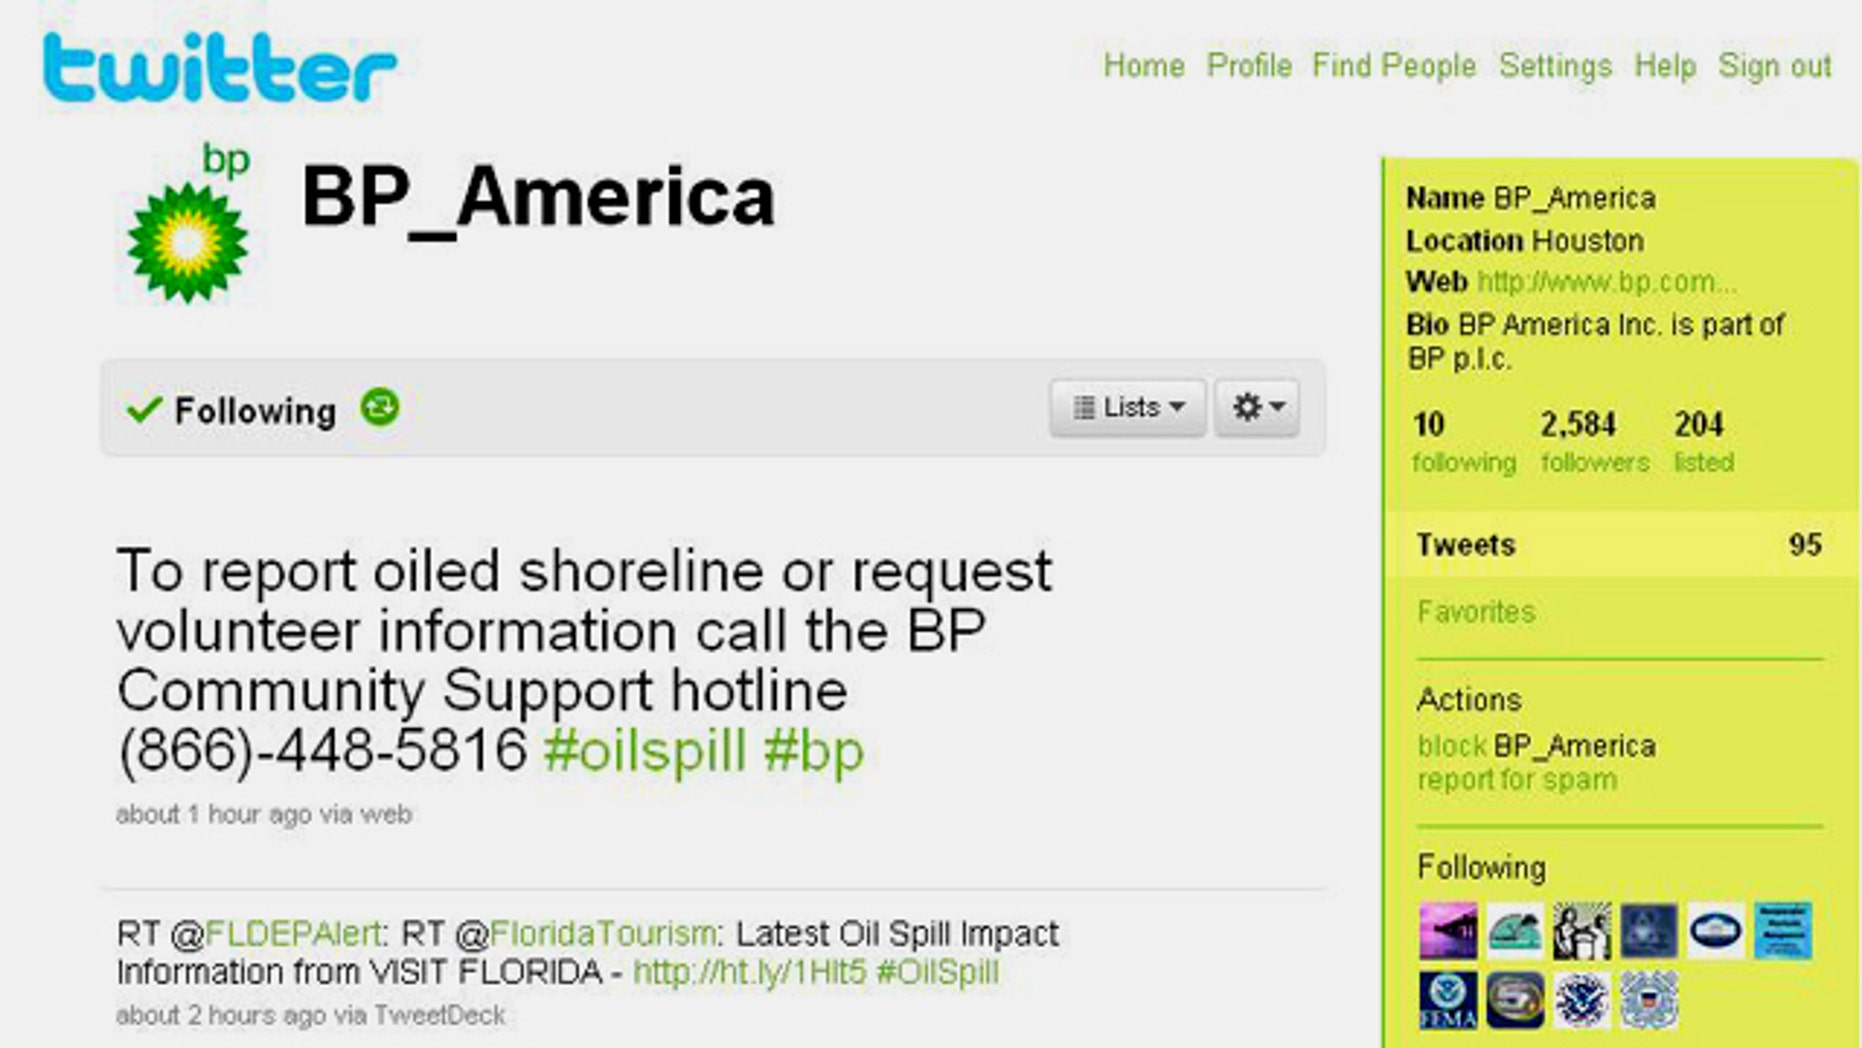 BP's Twitter feed, where the company has been distributing the most up to date information about the oil spill in the Gulf of Mexico.